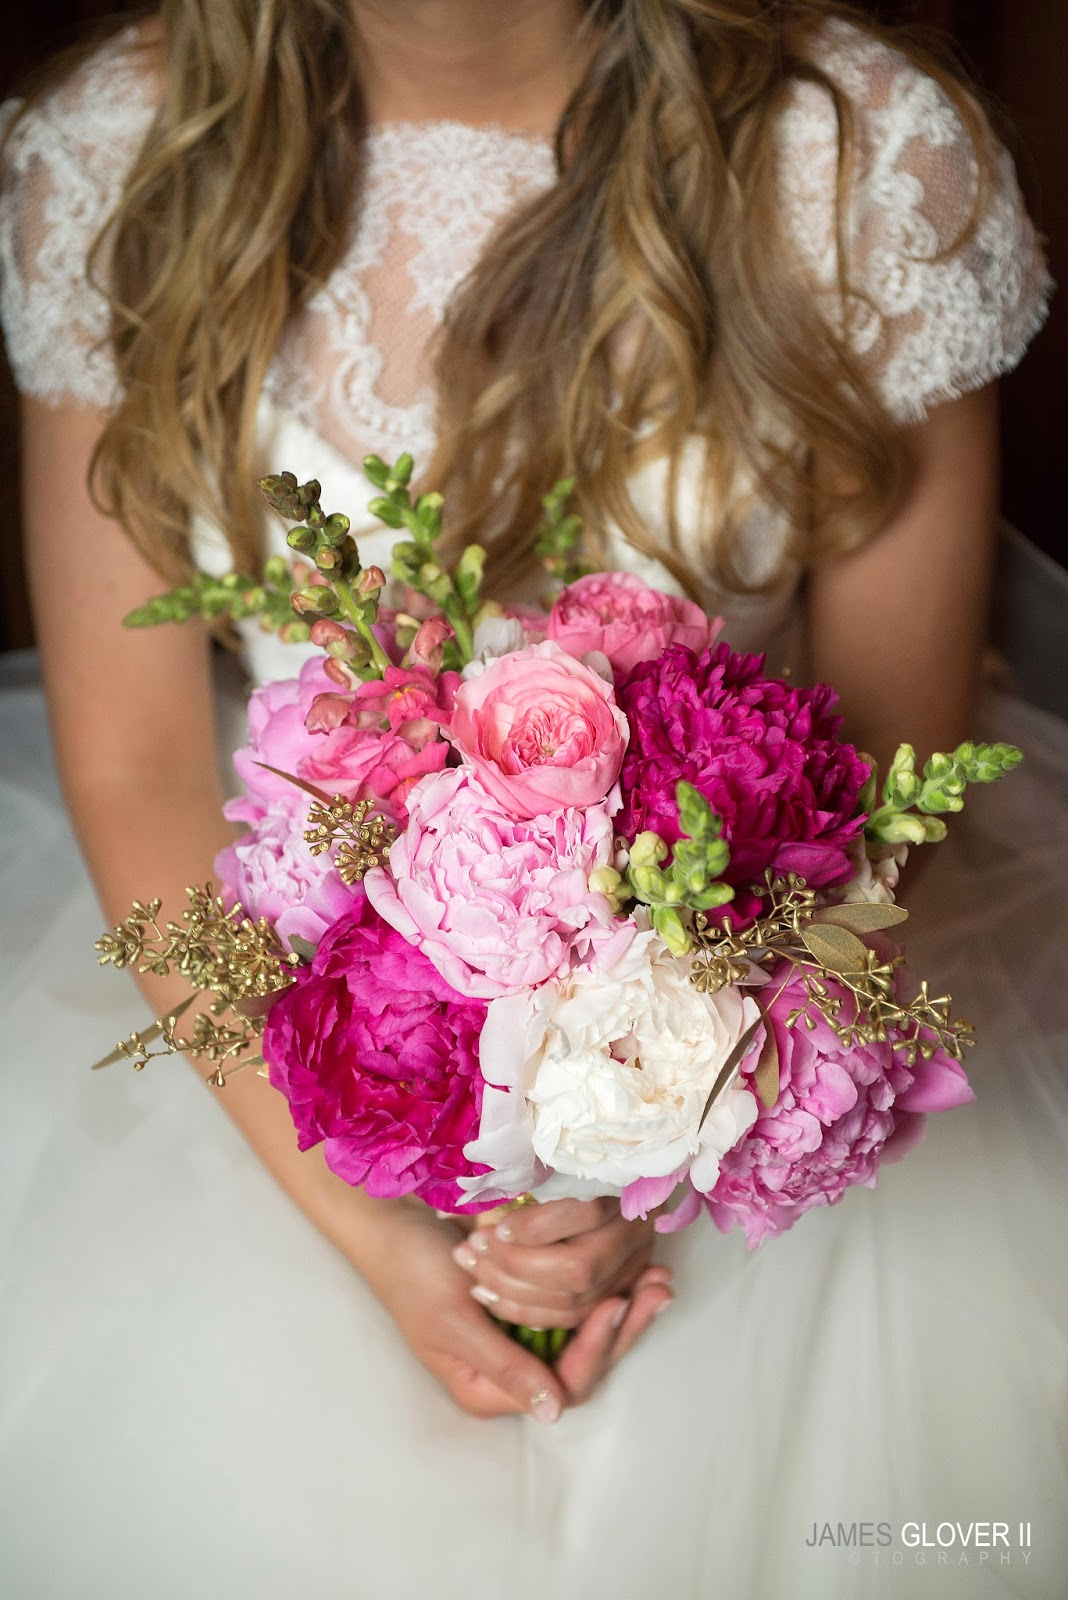 Pink and white bridal bouquet by B&B Design Reno // Nevada Museum of Art wedding // James Glover Photography // Take the Cake Event Planning